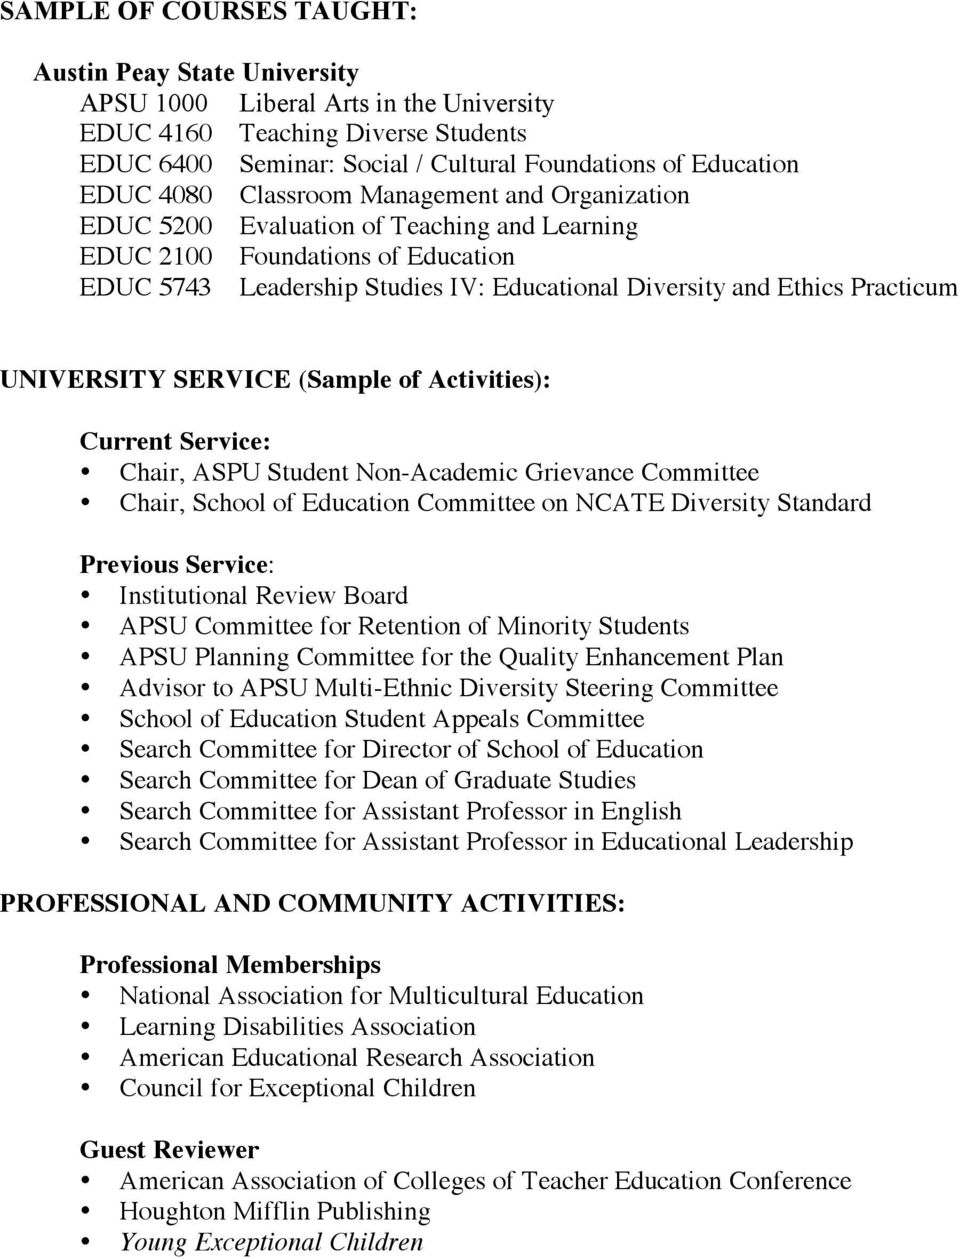 UNIVERSITY SERVICE (Sample of Activities): Current Service: Chair, ASPU Student Non-Academic Grievance Committee Chair, School of Education Committee on NCATE Diversity Standard Previous Service: